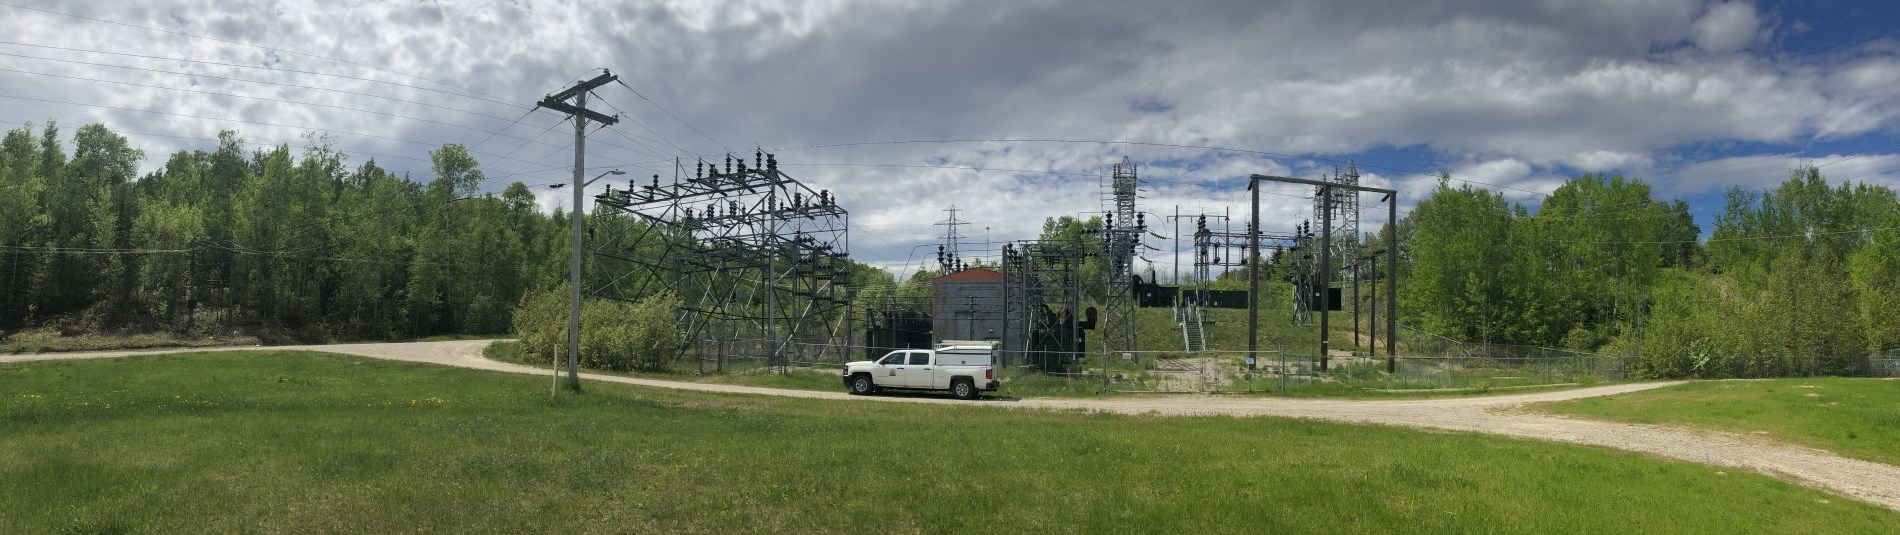 White truck at a substation